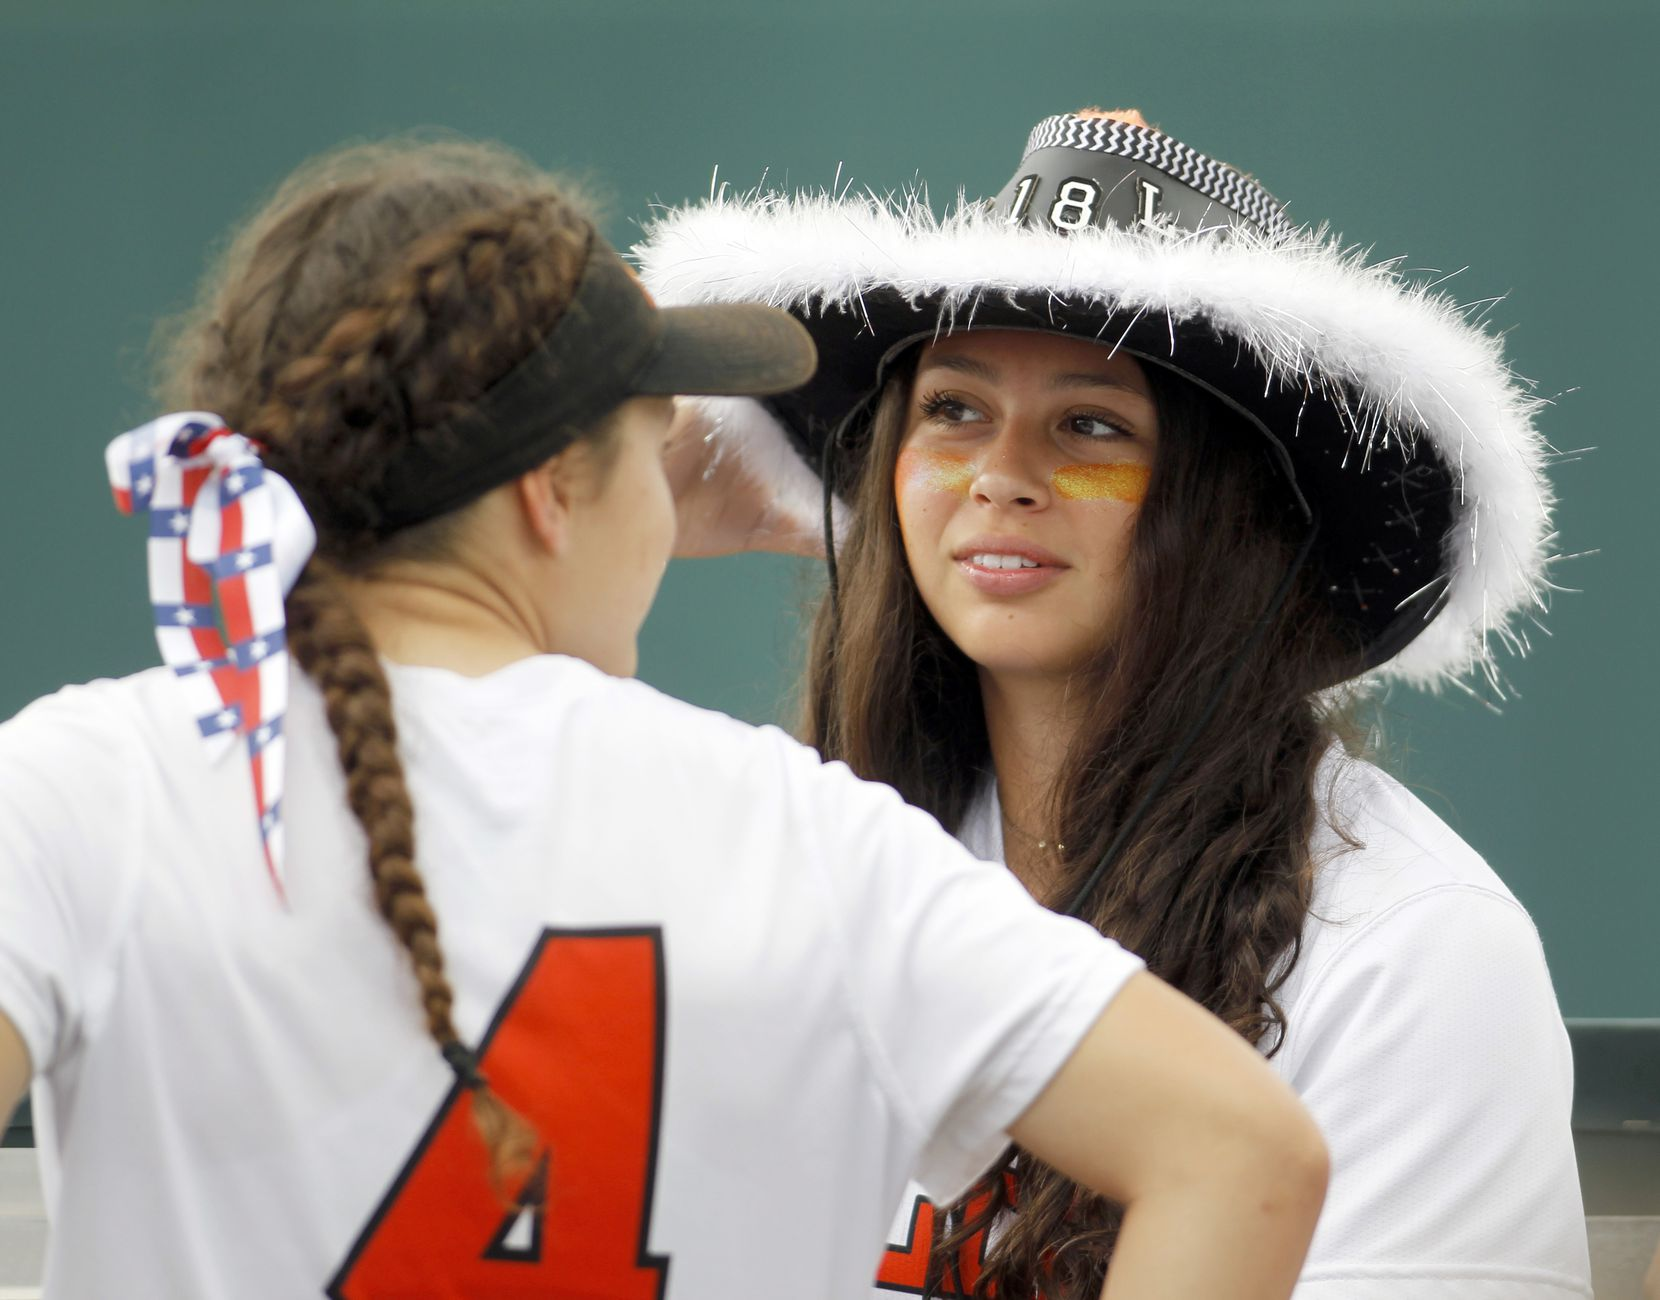 Aledo team manager Ana Flores (5), right, spends a light moment with Lady Cats infielder Hannah Pack (4) while waiting for the conclusion of the sate 4a game. The two teams played their UIL 5A state softball championship game at Red and Charline McCombs Field on the University of Texas campus in Austin on June 5, 2021. (Steve Hamm/ Special Contributor)